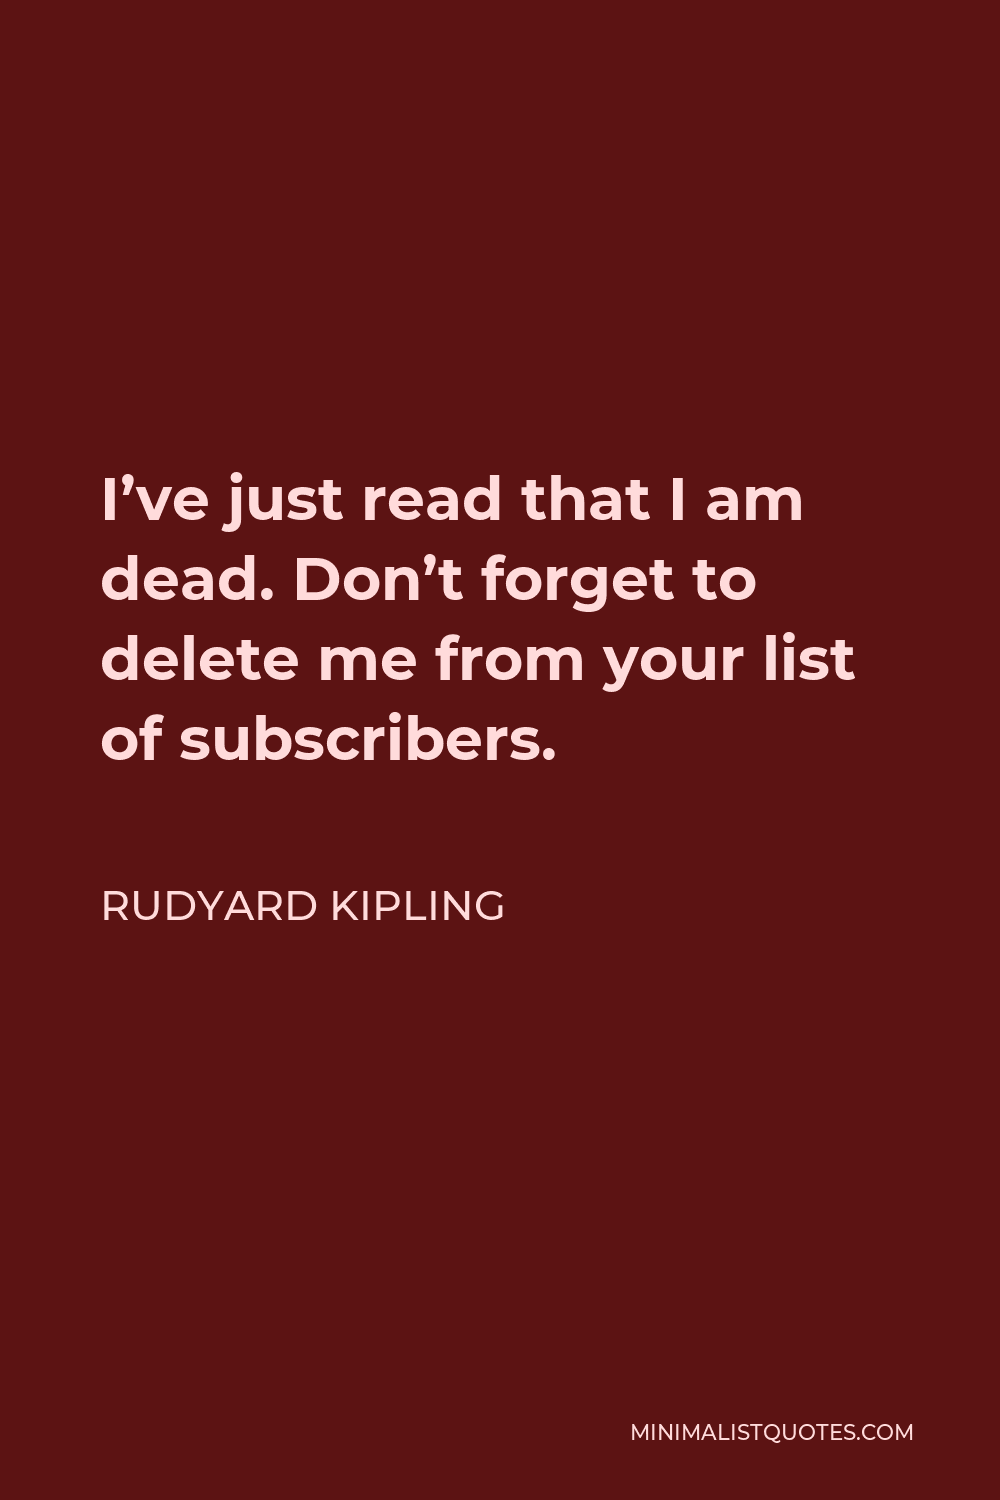 Rudyard Kipling Quote - I've just read that I am dead. Don't forget to delete me from your list of subscribers.